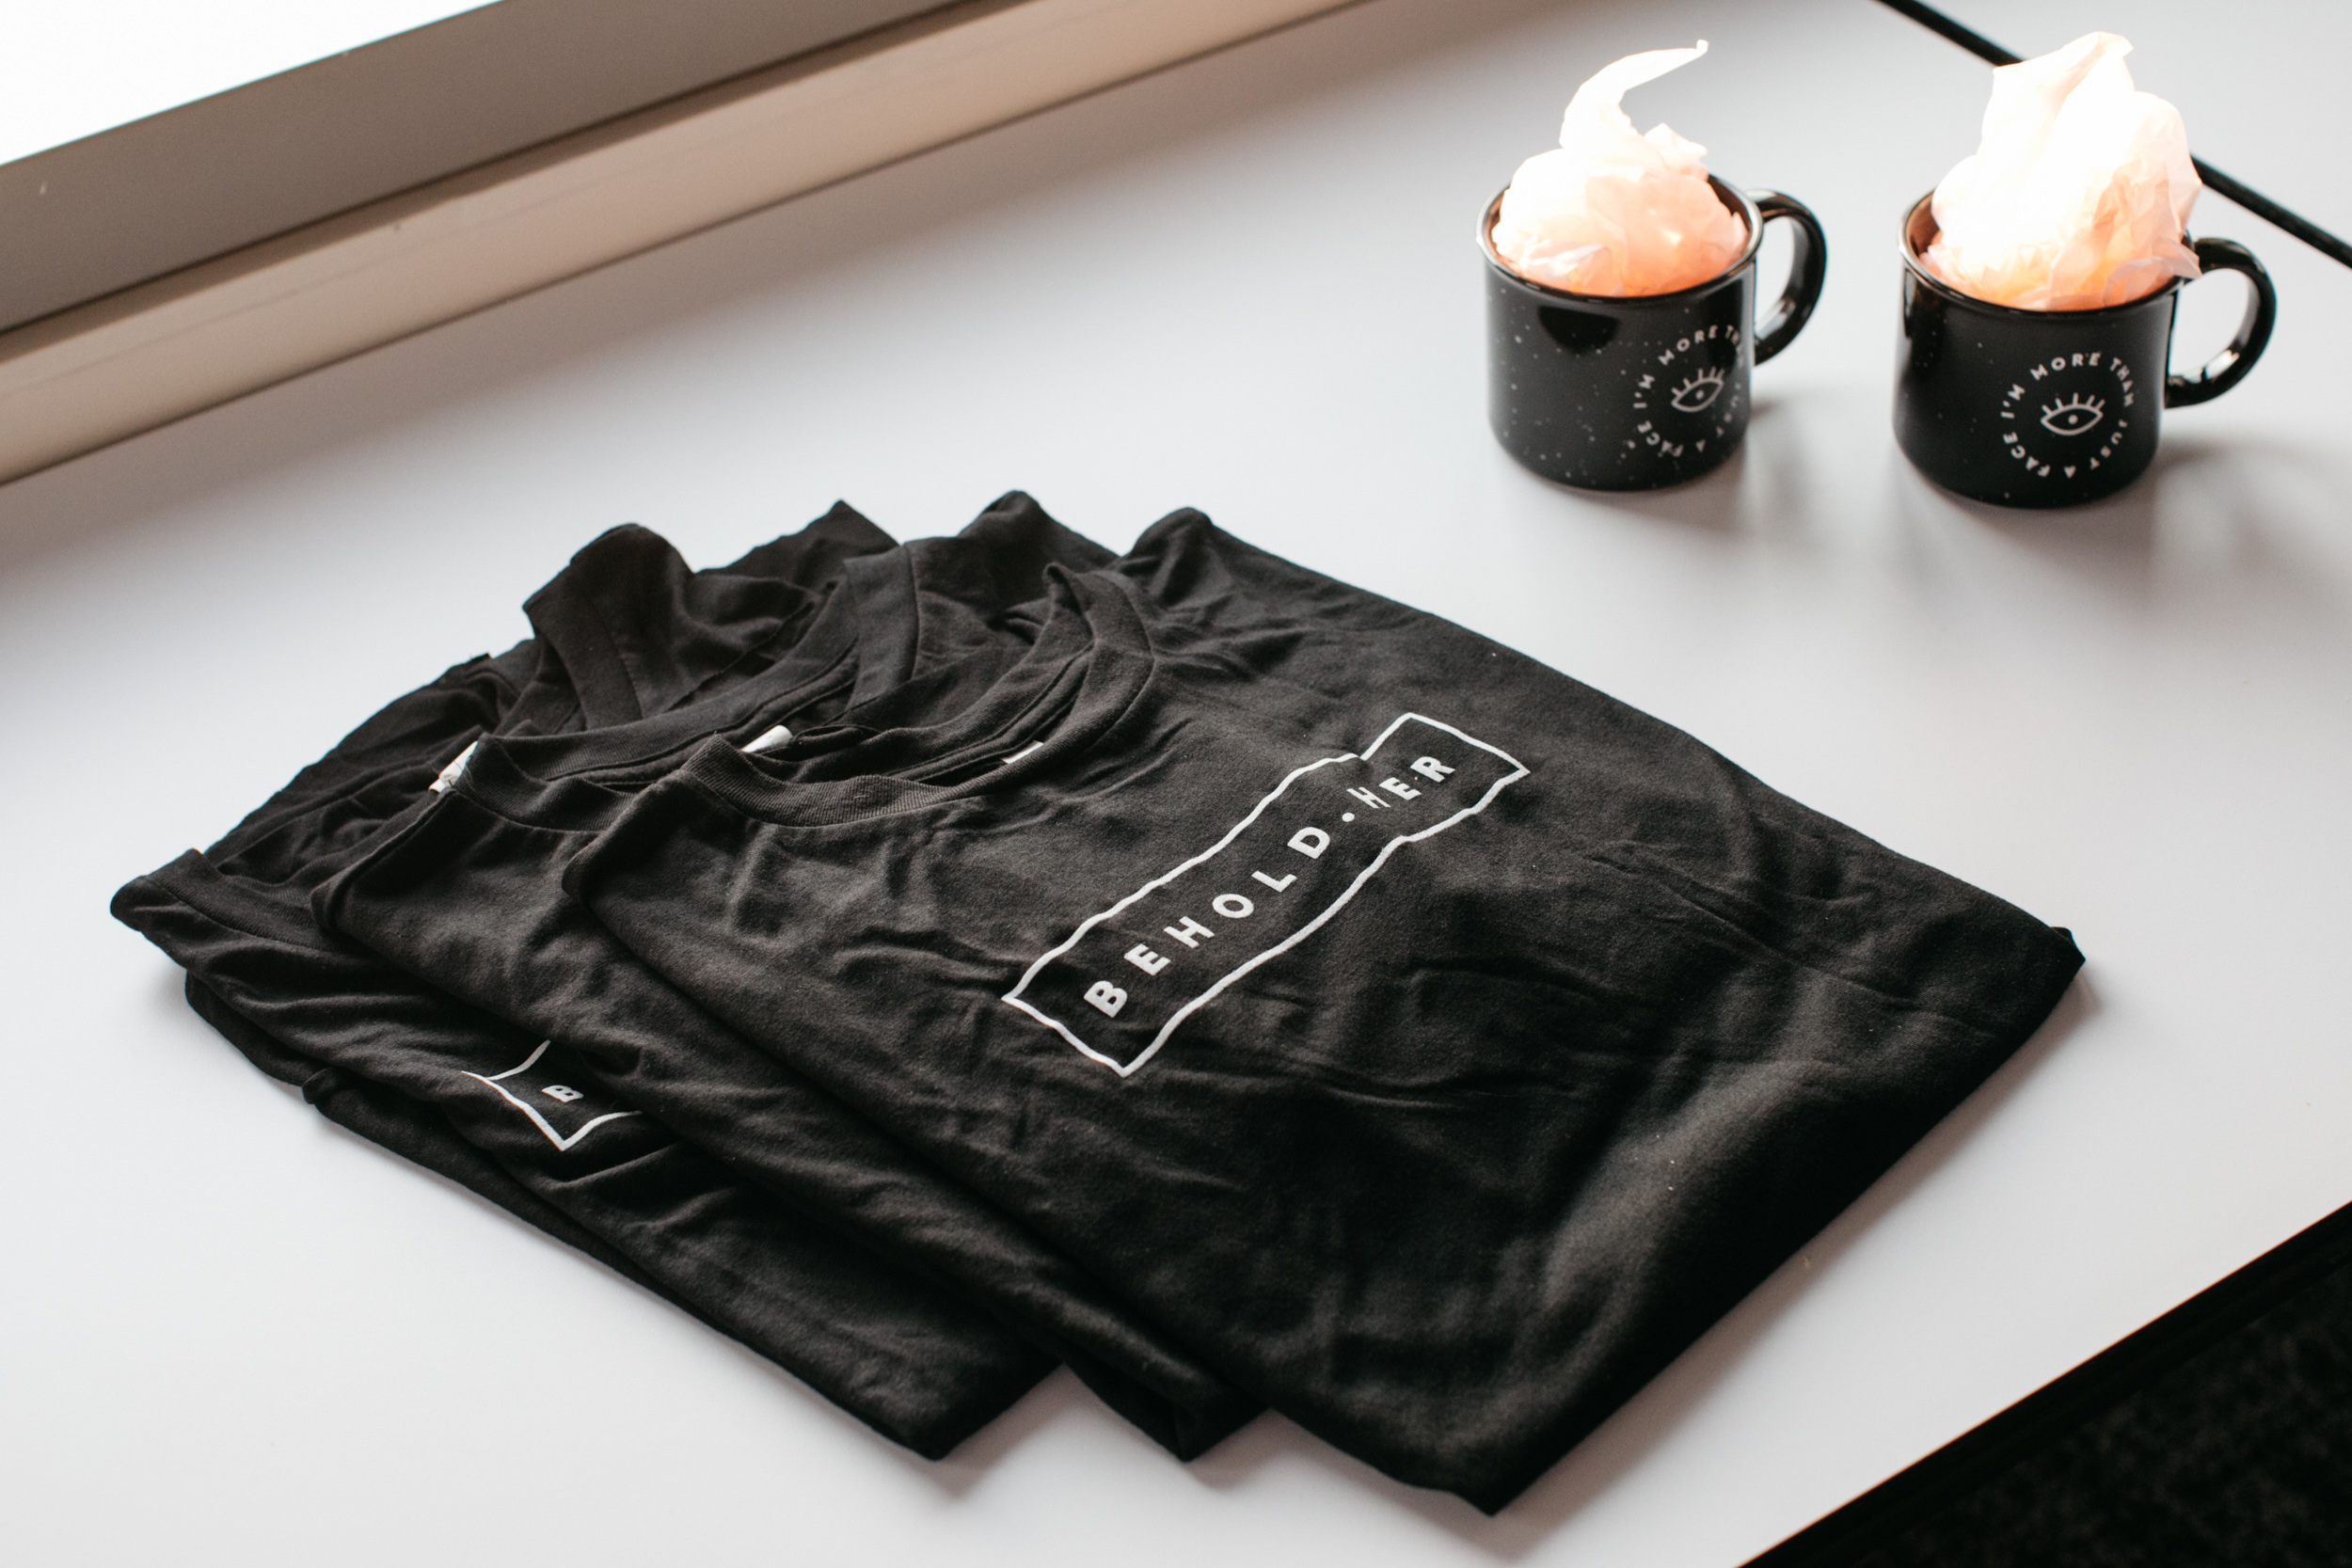 Limited edition tees and mugs that are sold exclusively at events.